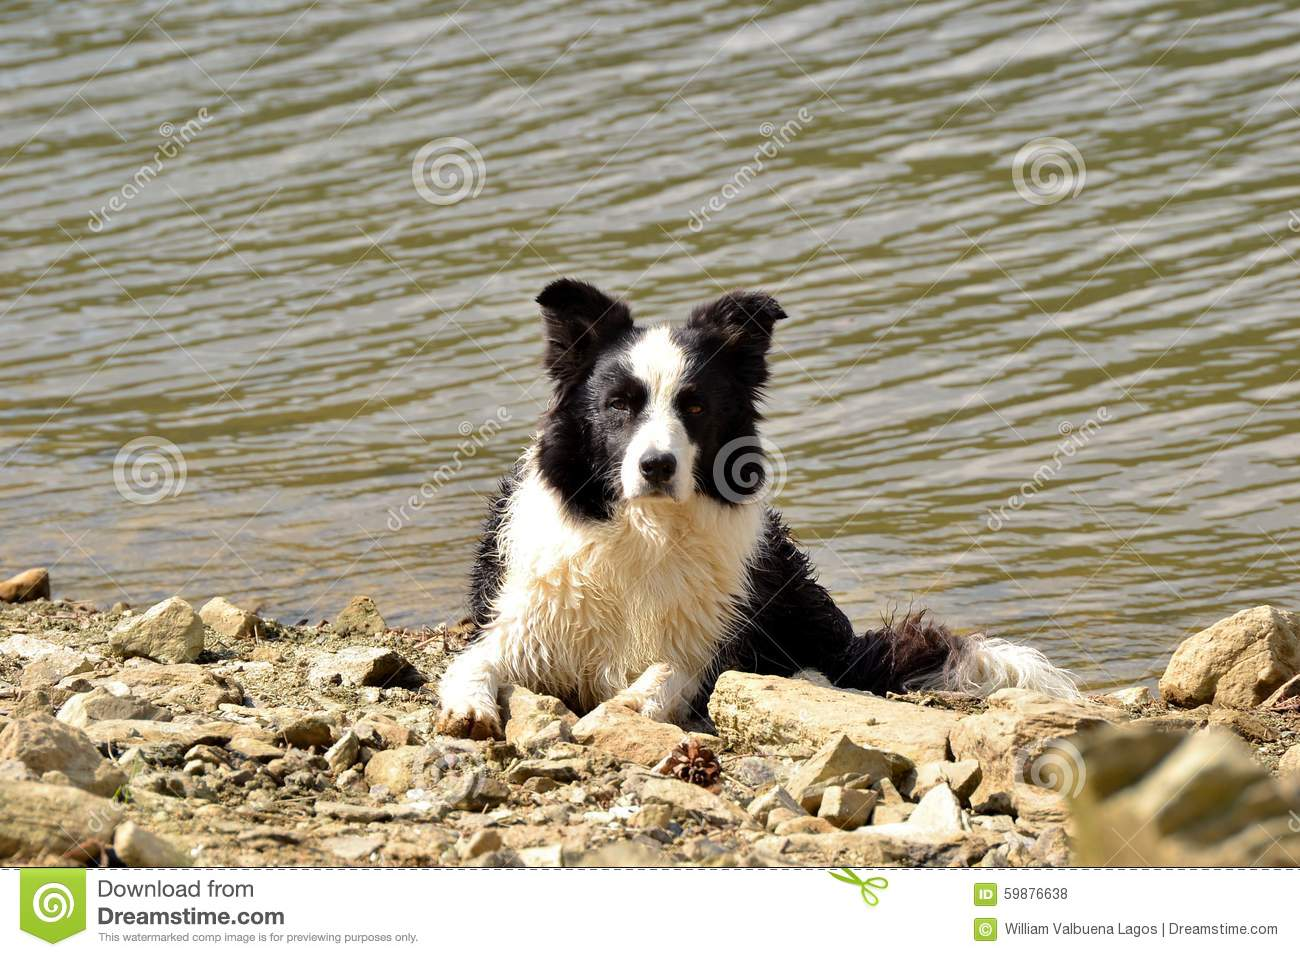 Ariel el border collie